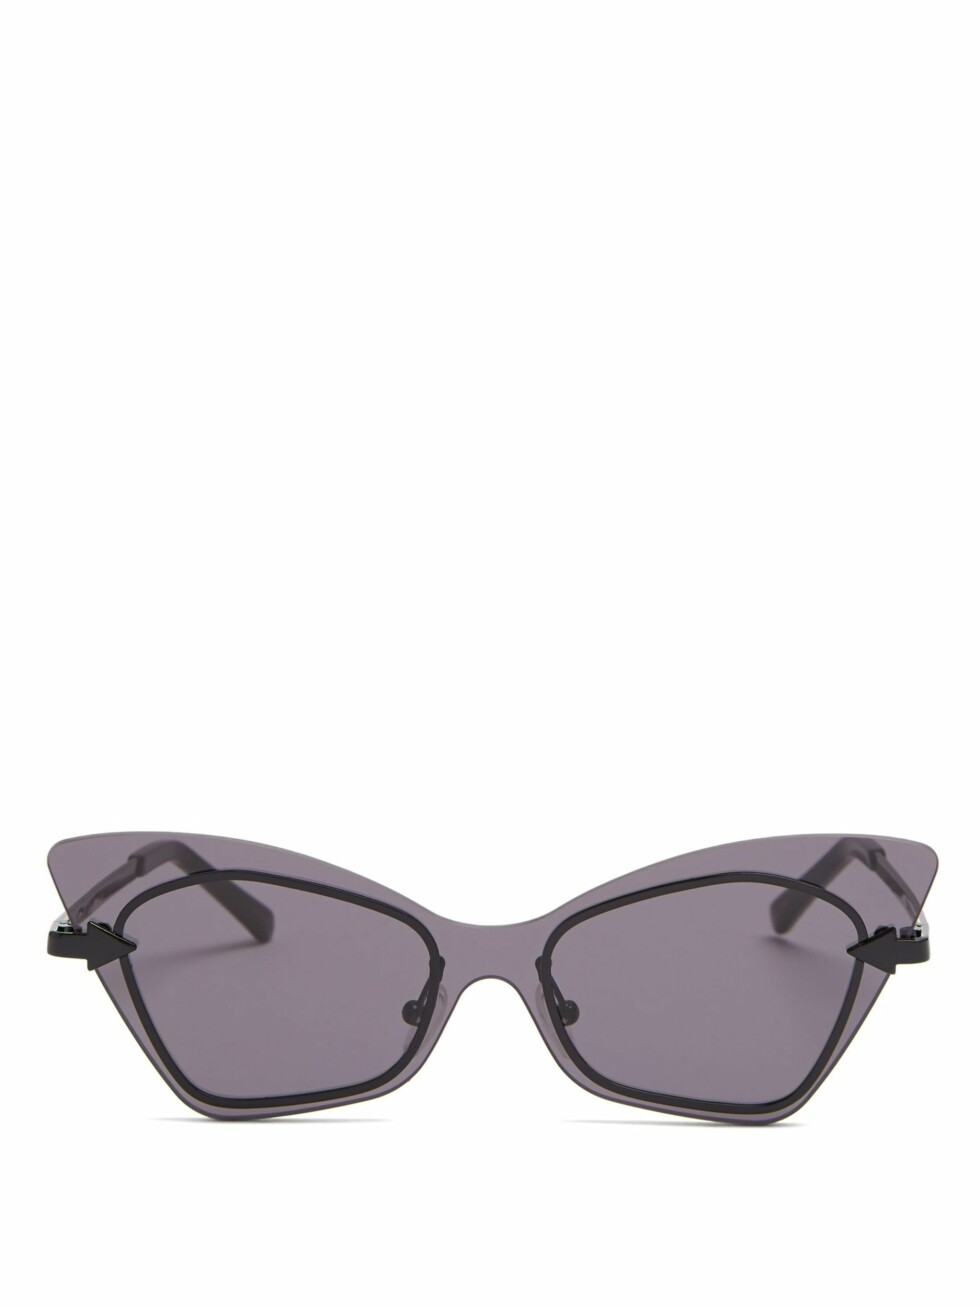 Solbriller fra Karen Walker |1755,-| https://www.matchesfashion.com/intl/products/Karen-Walker-Eyewear-Mrs-Brill-cat-eye-acetate-sunglasses%09-1208285